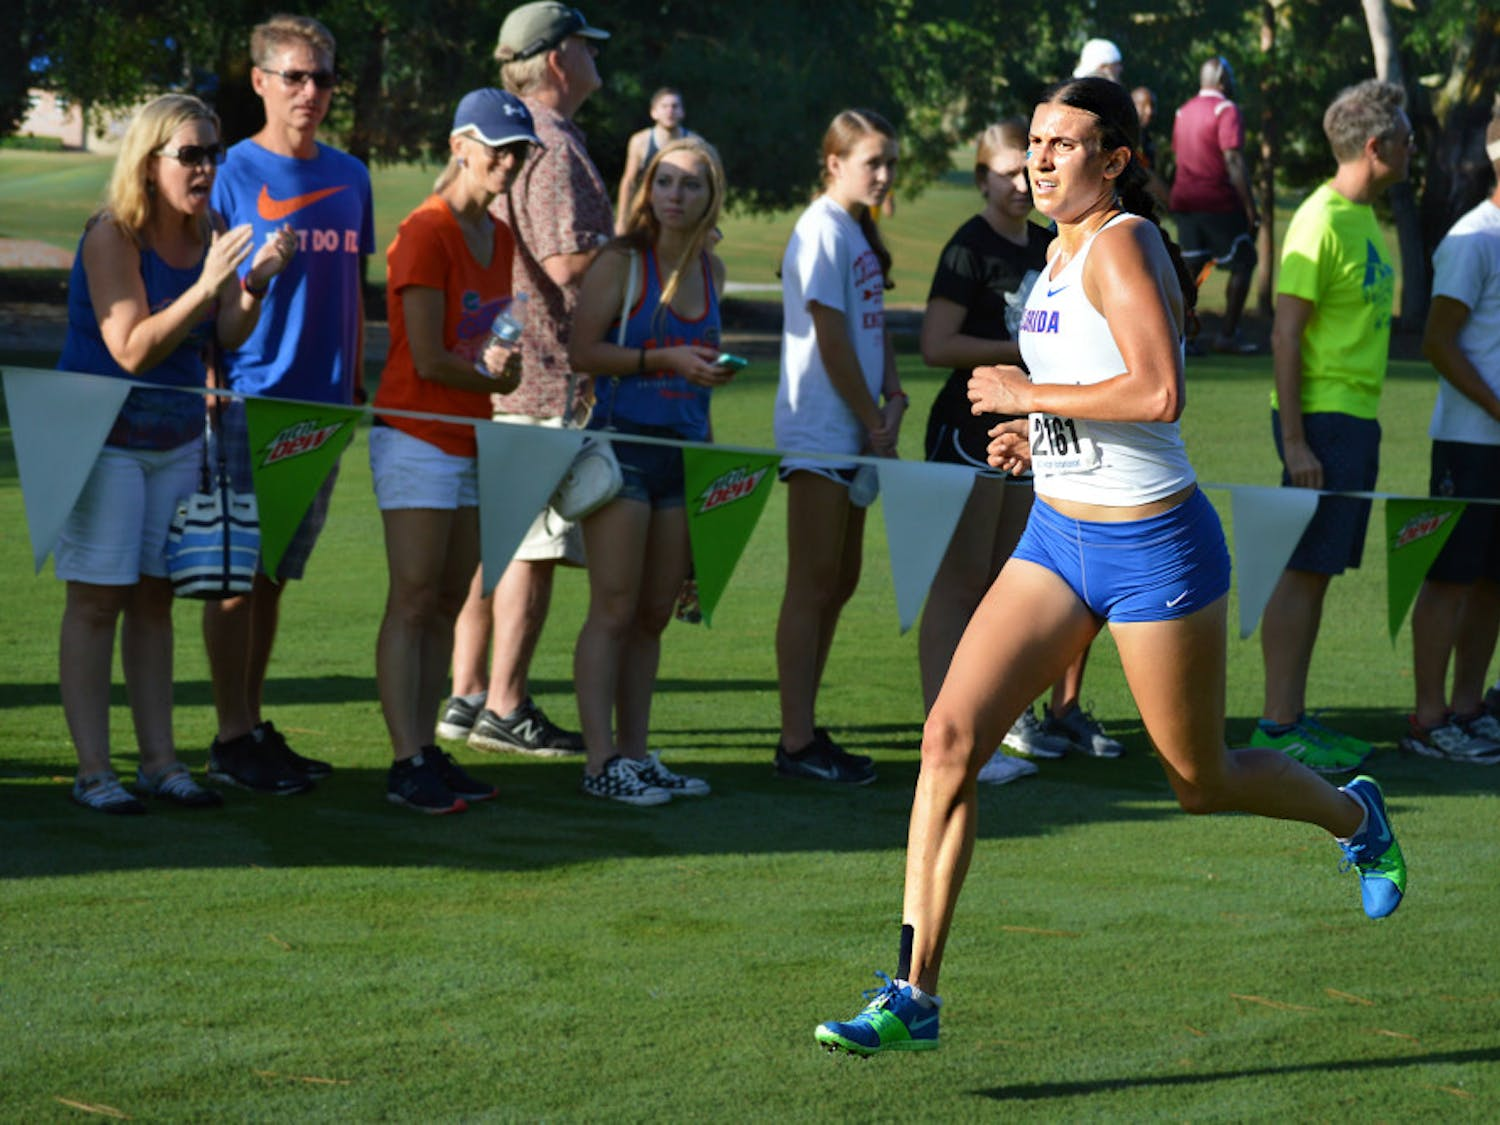 Jessica Pascoe became the first UF runner to finish first in every meet she competed in in a season.